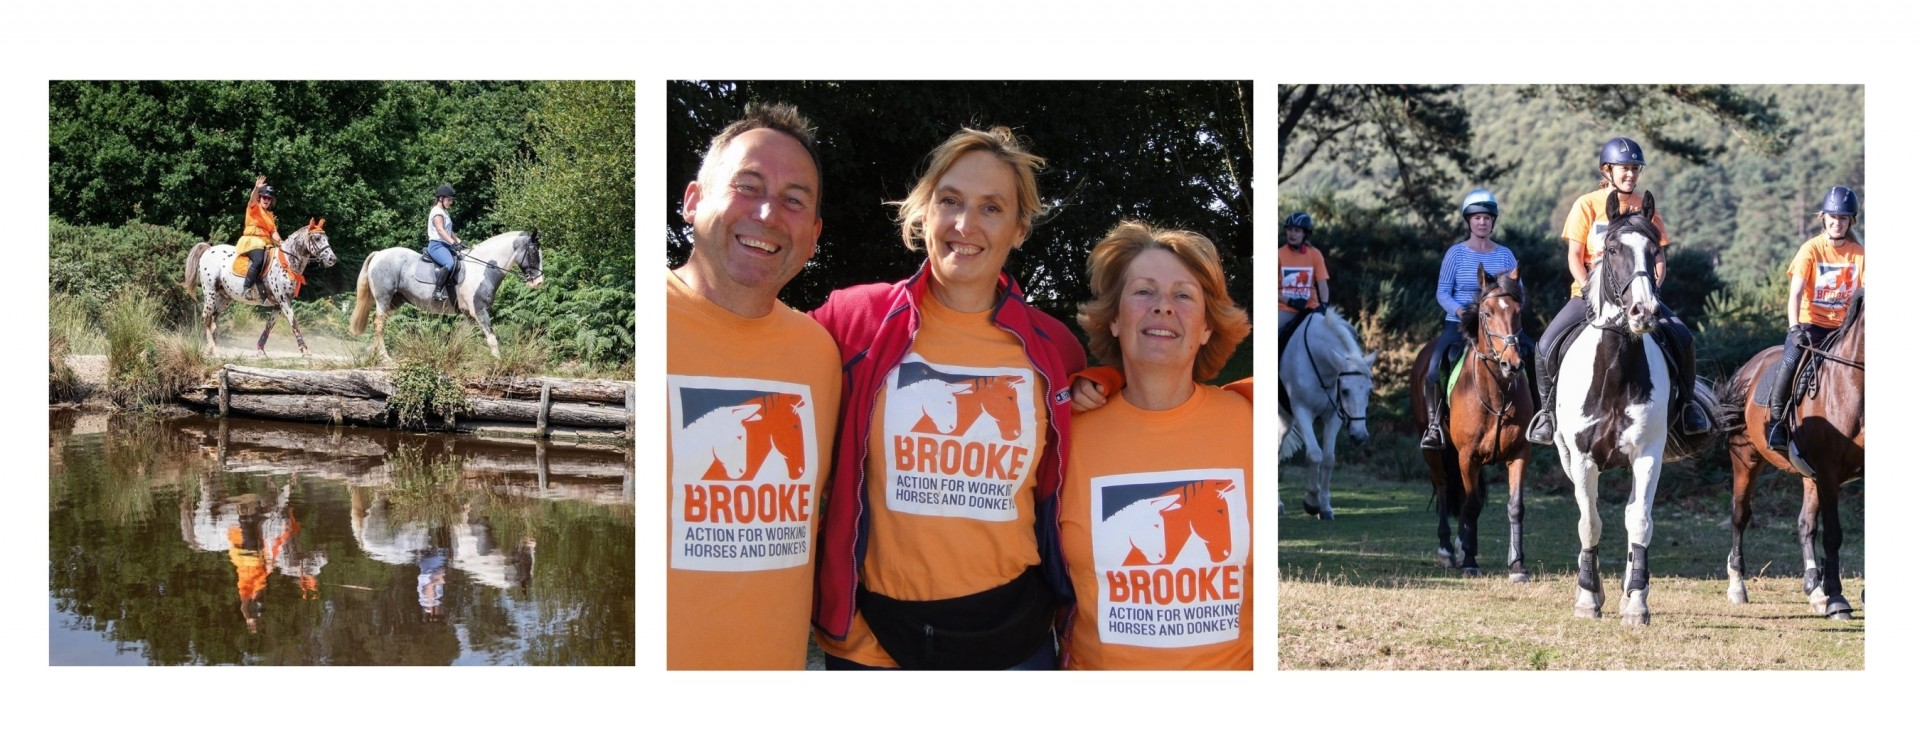 collage with three images of Brooke fundraisers